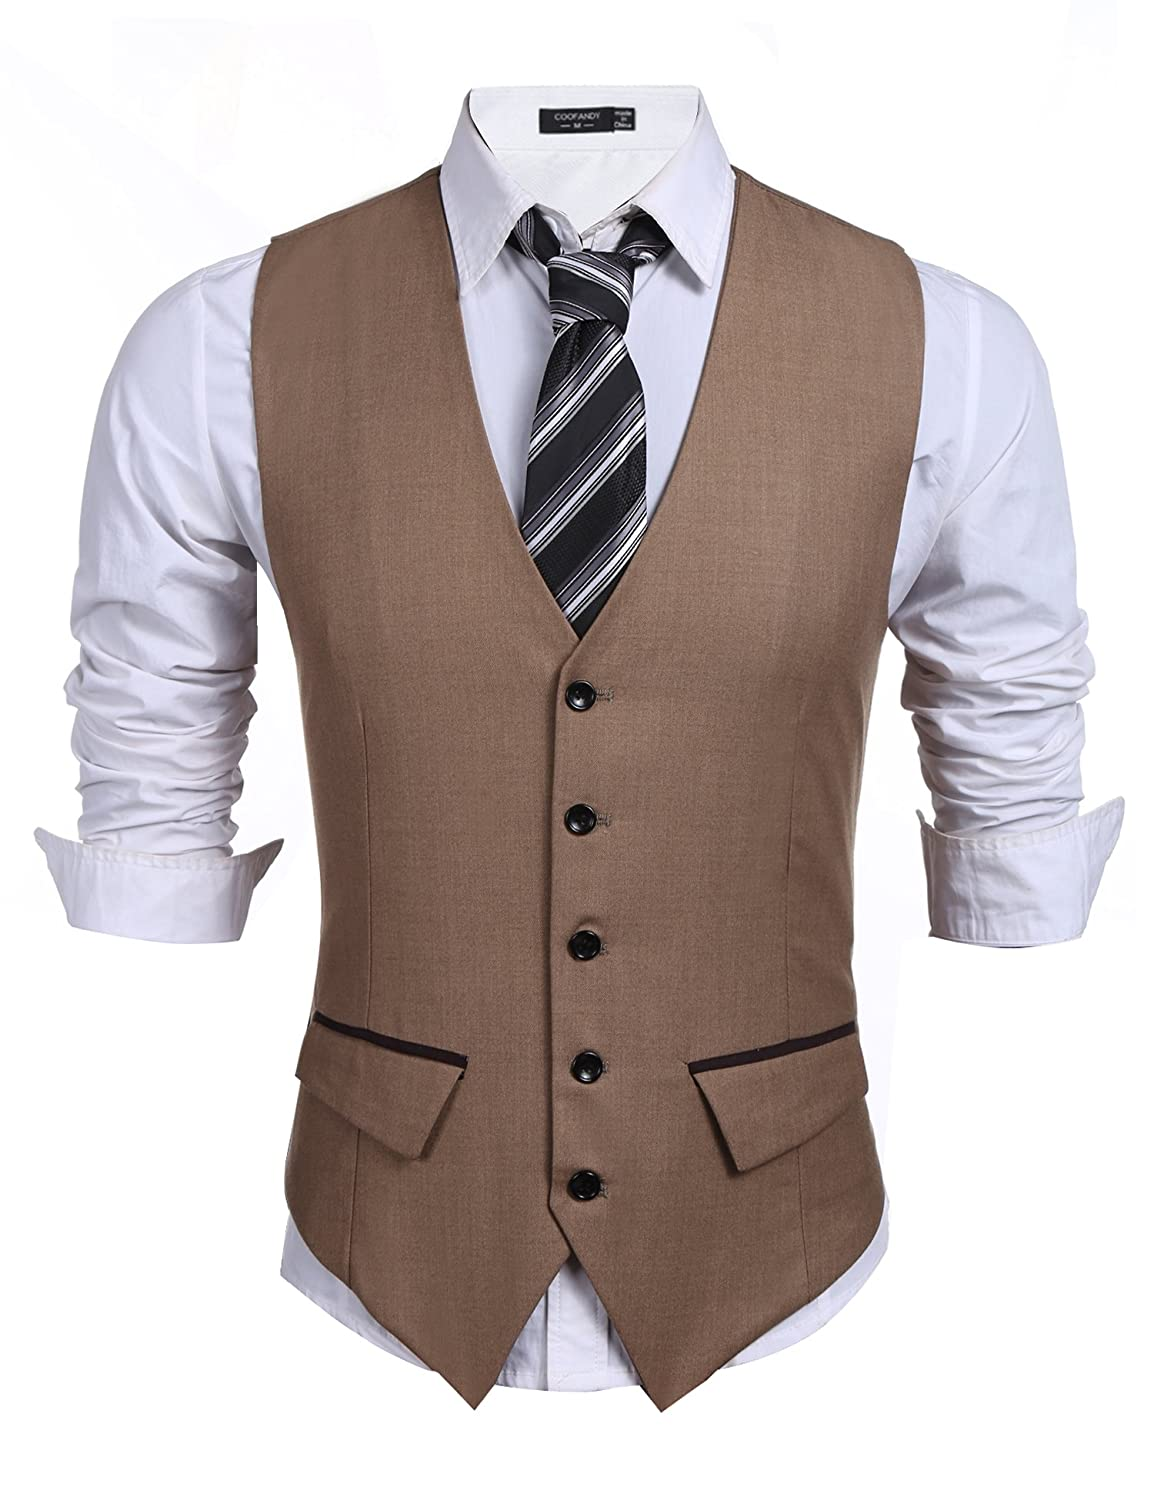 Coofandy Men's Slim Fit Business Vest Waistcoat With Pockets